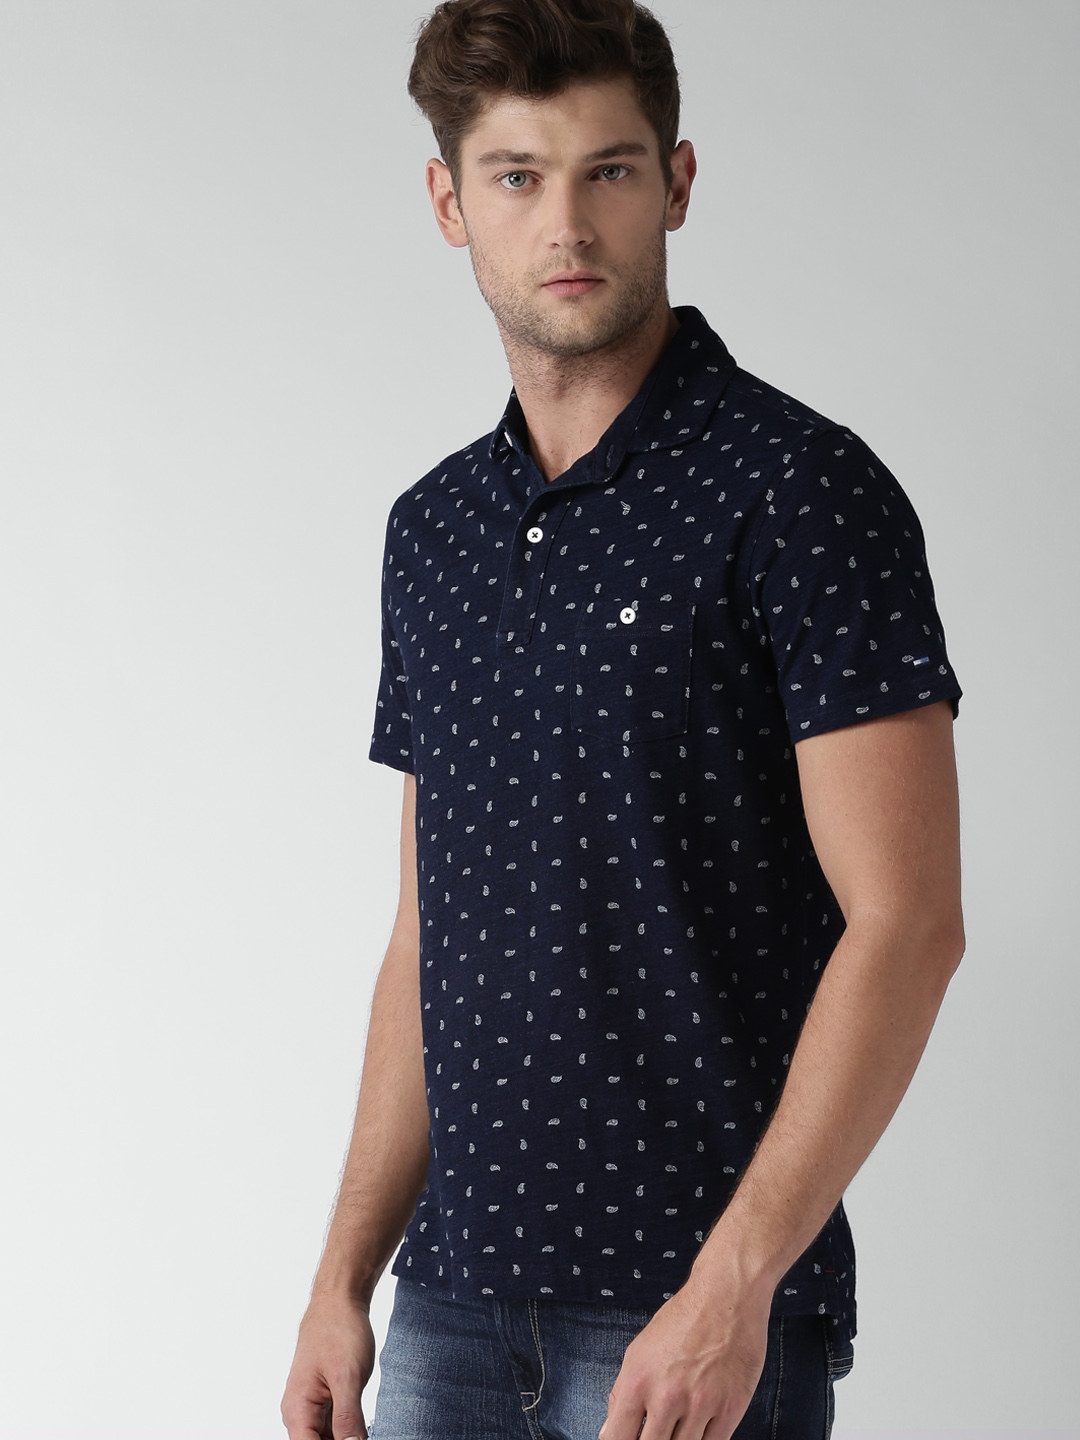 bb676cdc Buy Tommy Hilfiger Men Navy Printed Polo T Shirt - Tshirts for Men ...